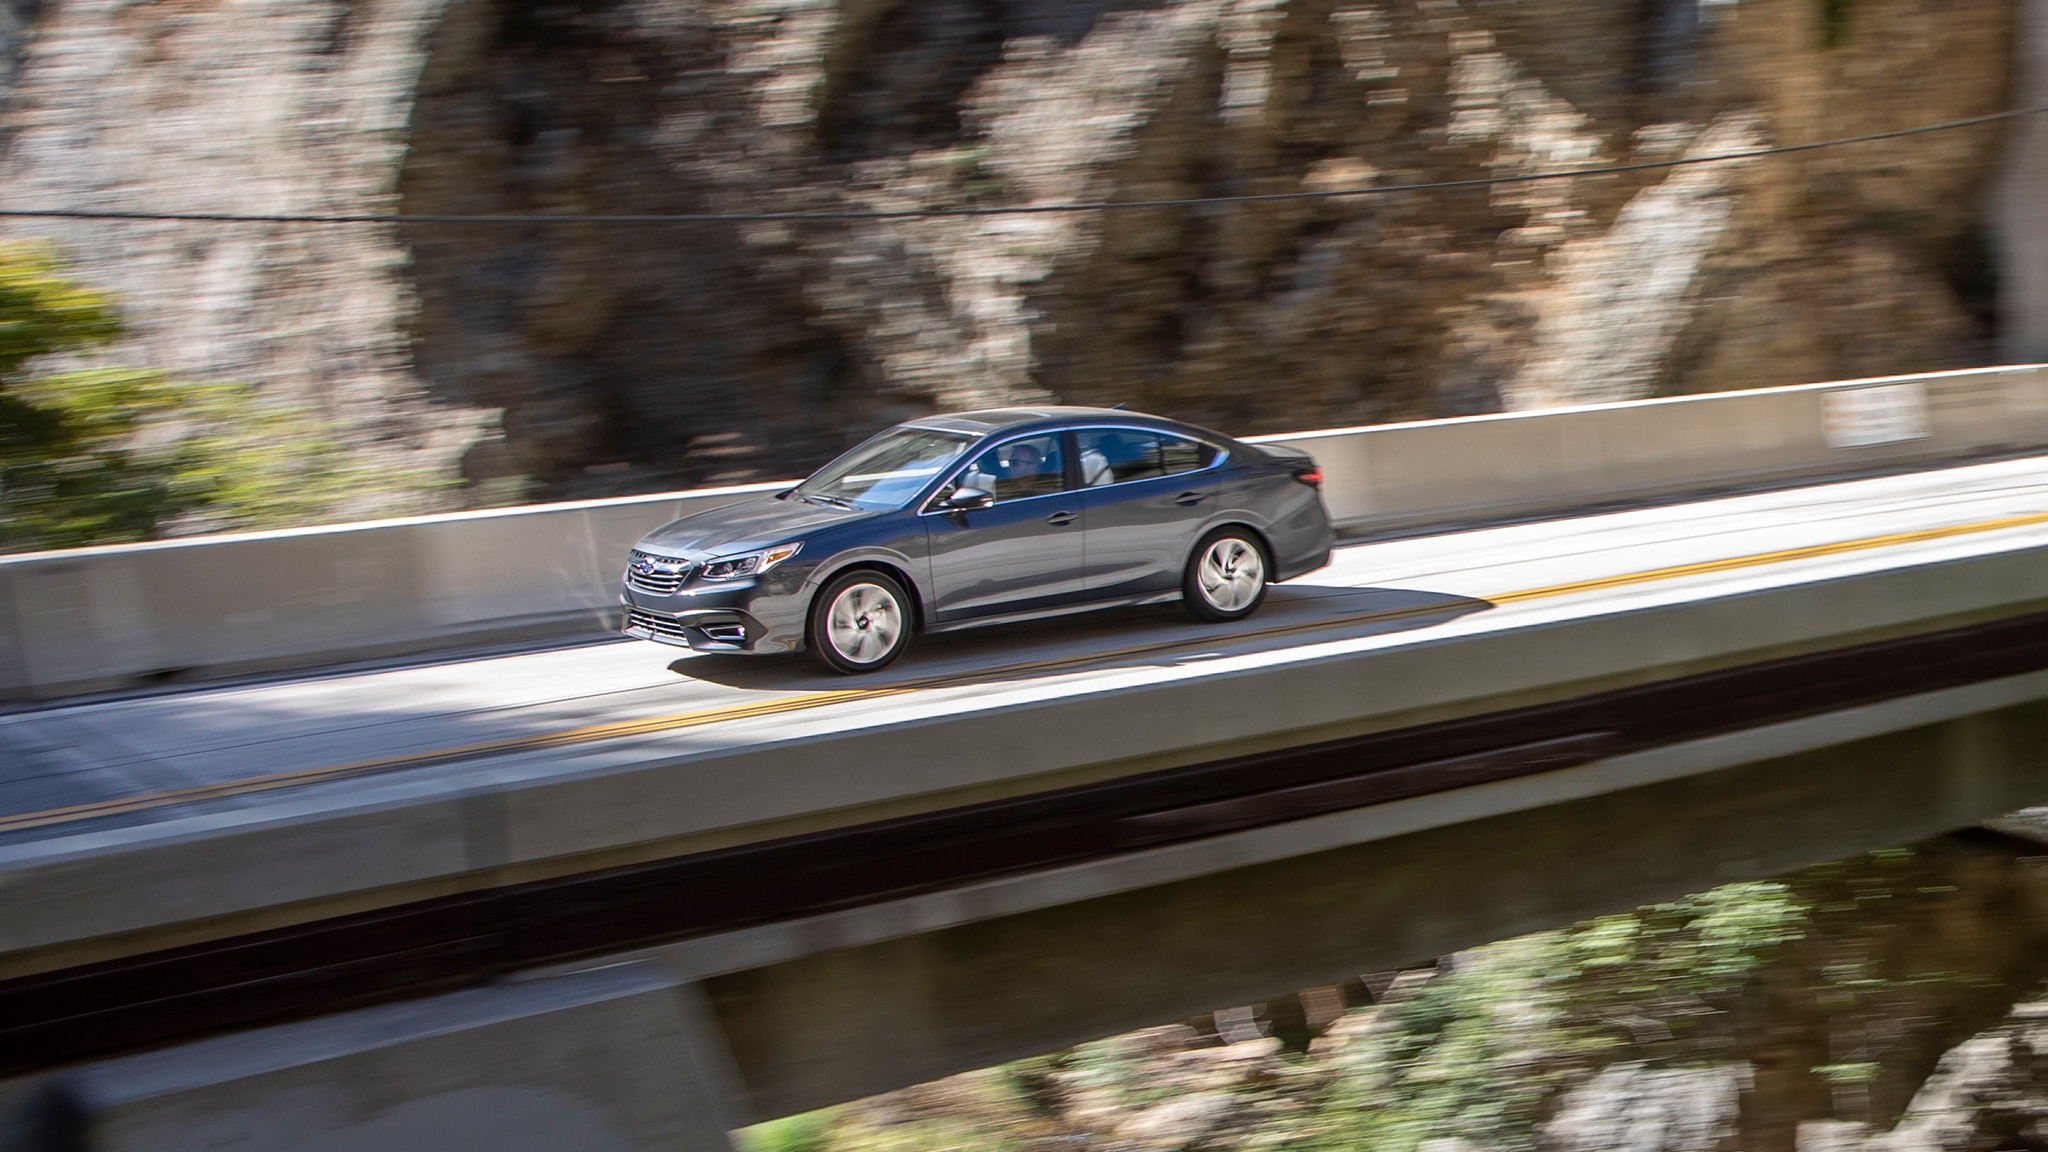 2020 Subaru Legacy First Drive Review: As Good as the